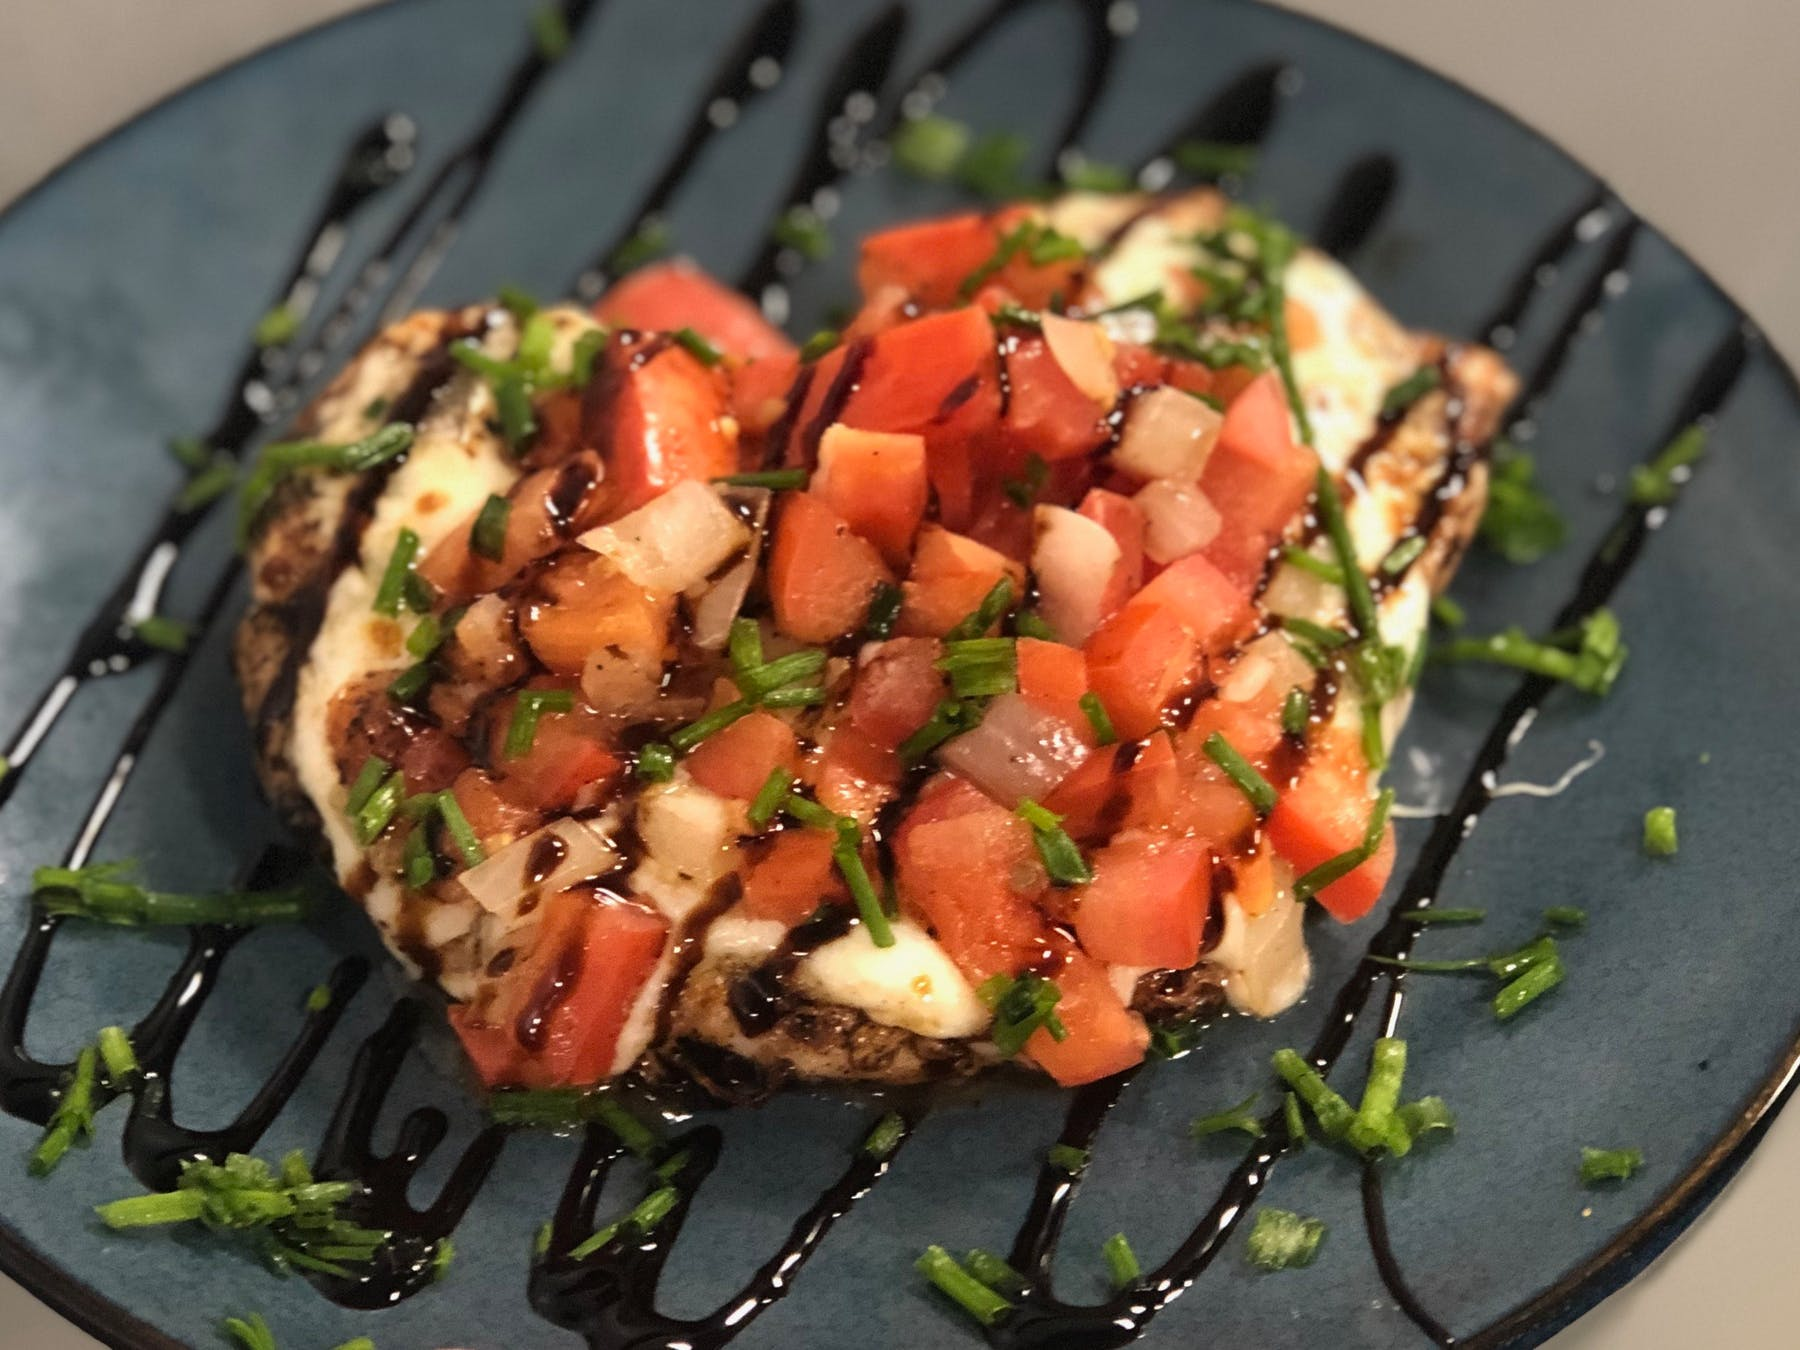 Sunset Bruschetta Chicken Breast